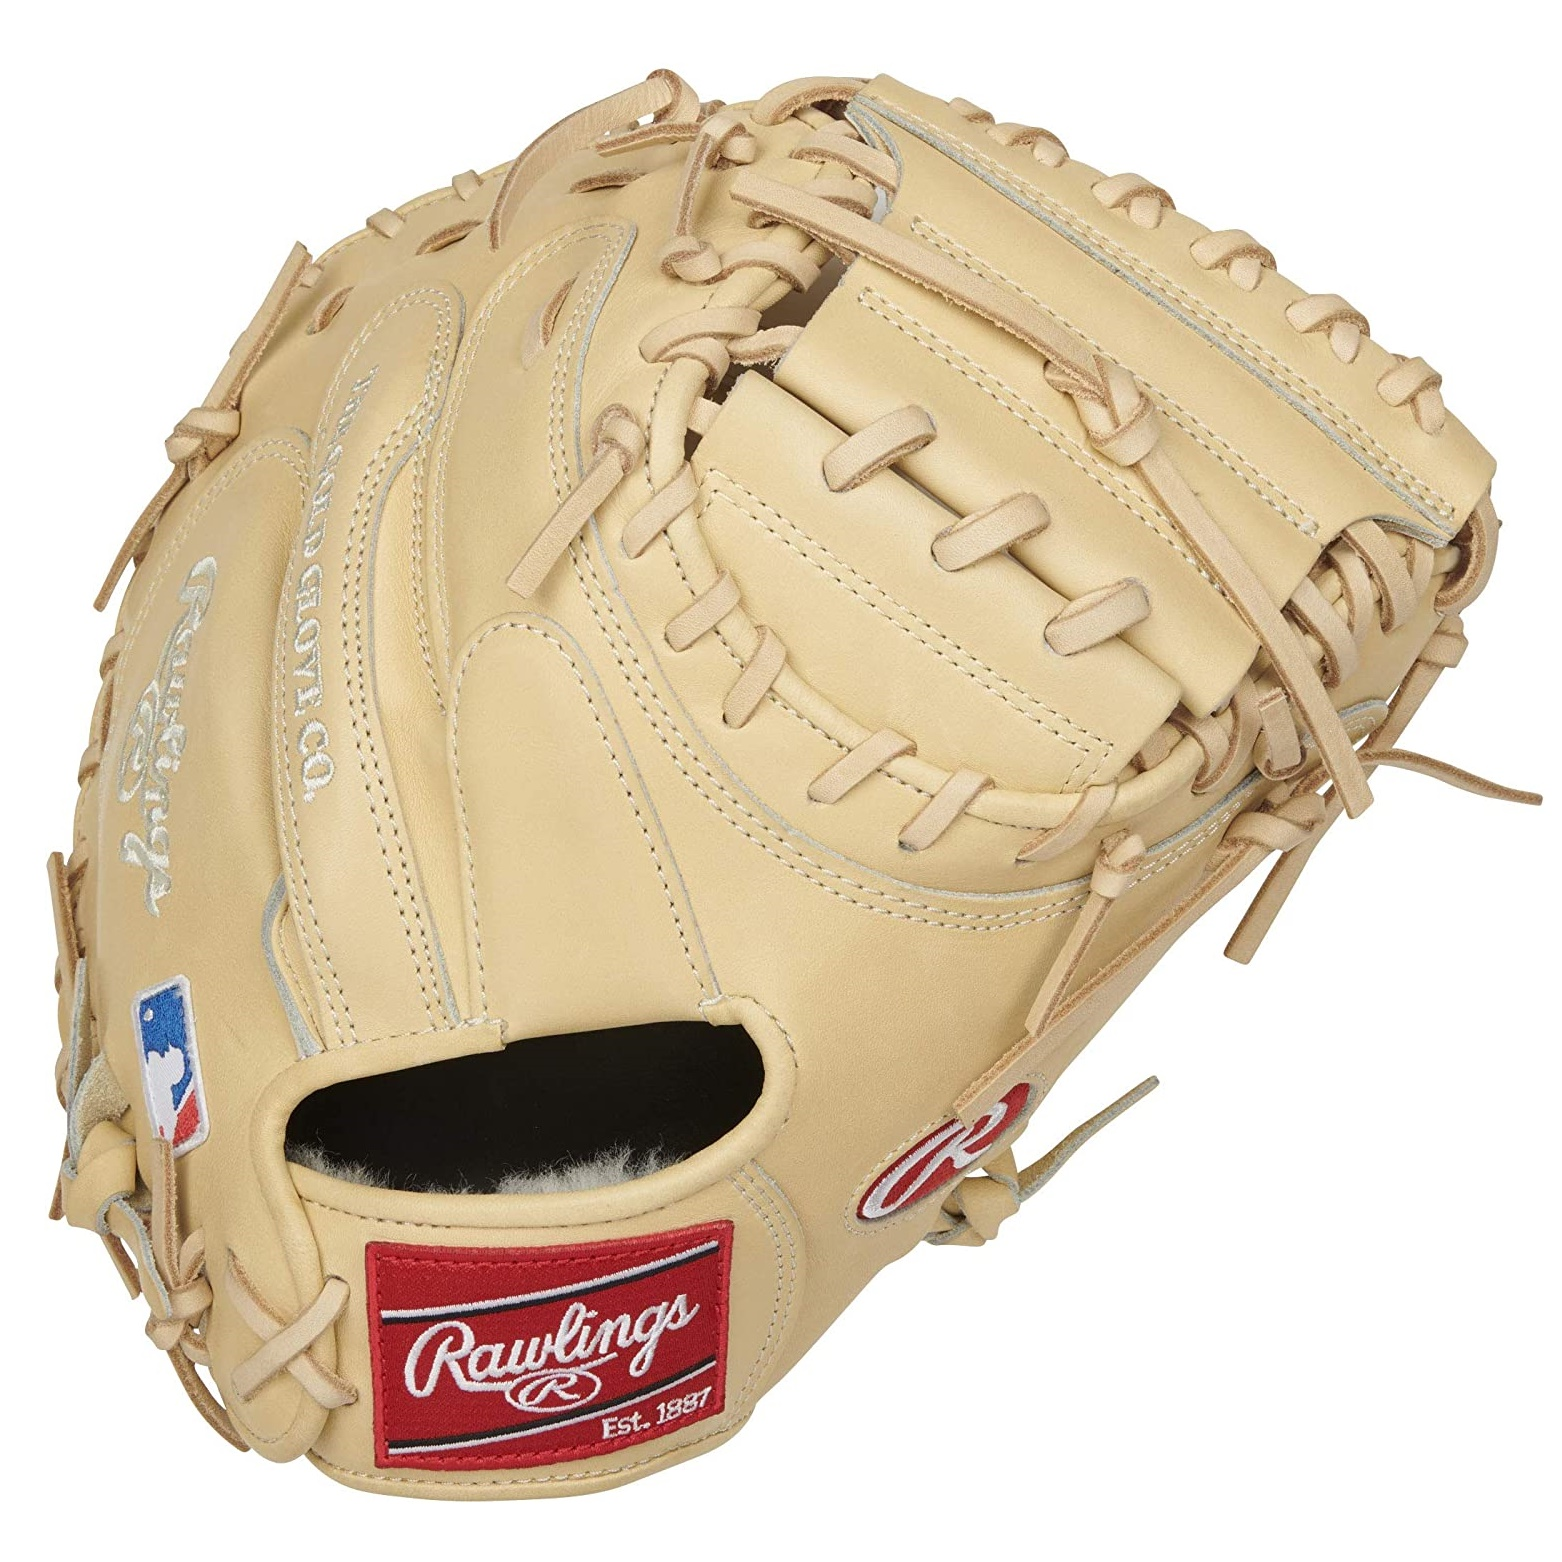 rawlings-pro-preferred-catchers-mitt-1-piece-solid-web-34-inch-right-hand-throw PROSCM43C-RightHandThrow   Become the next great behind the plate with the 2021 Pro